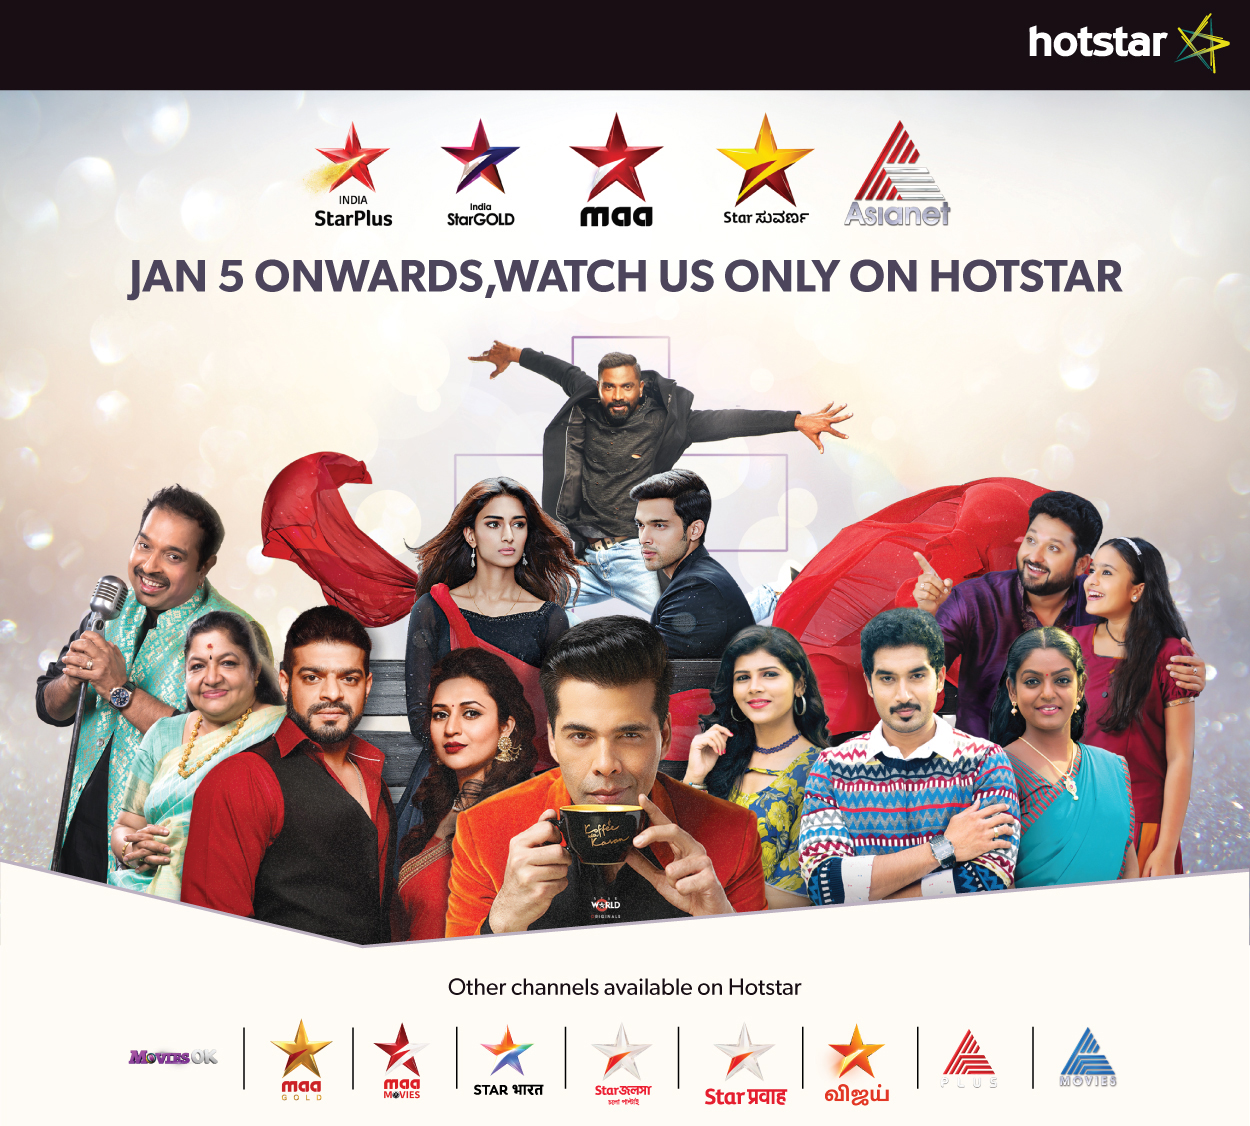 Starting January 5, STAR India's TV Channels will be